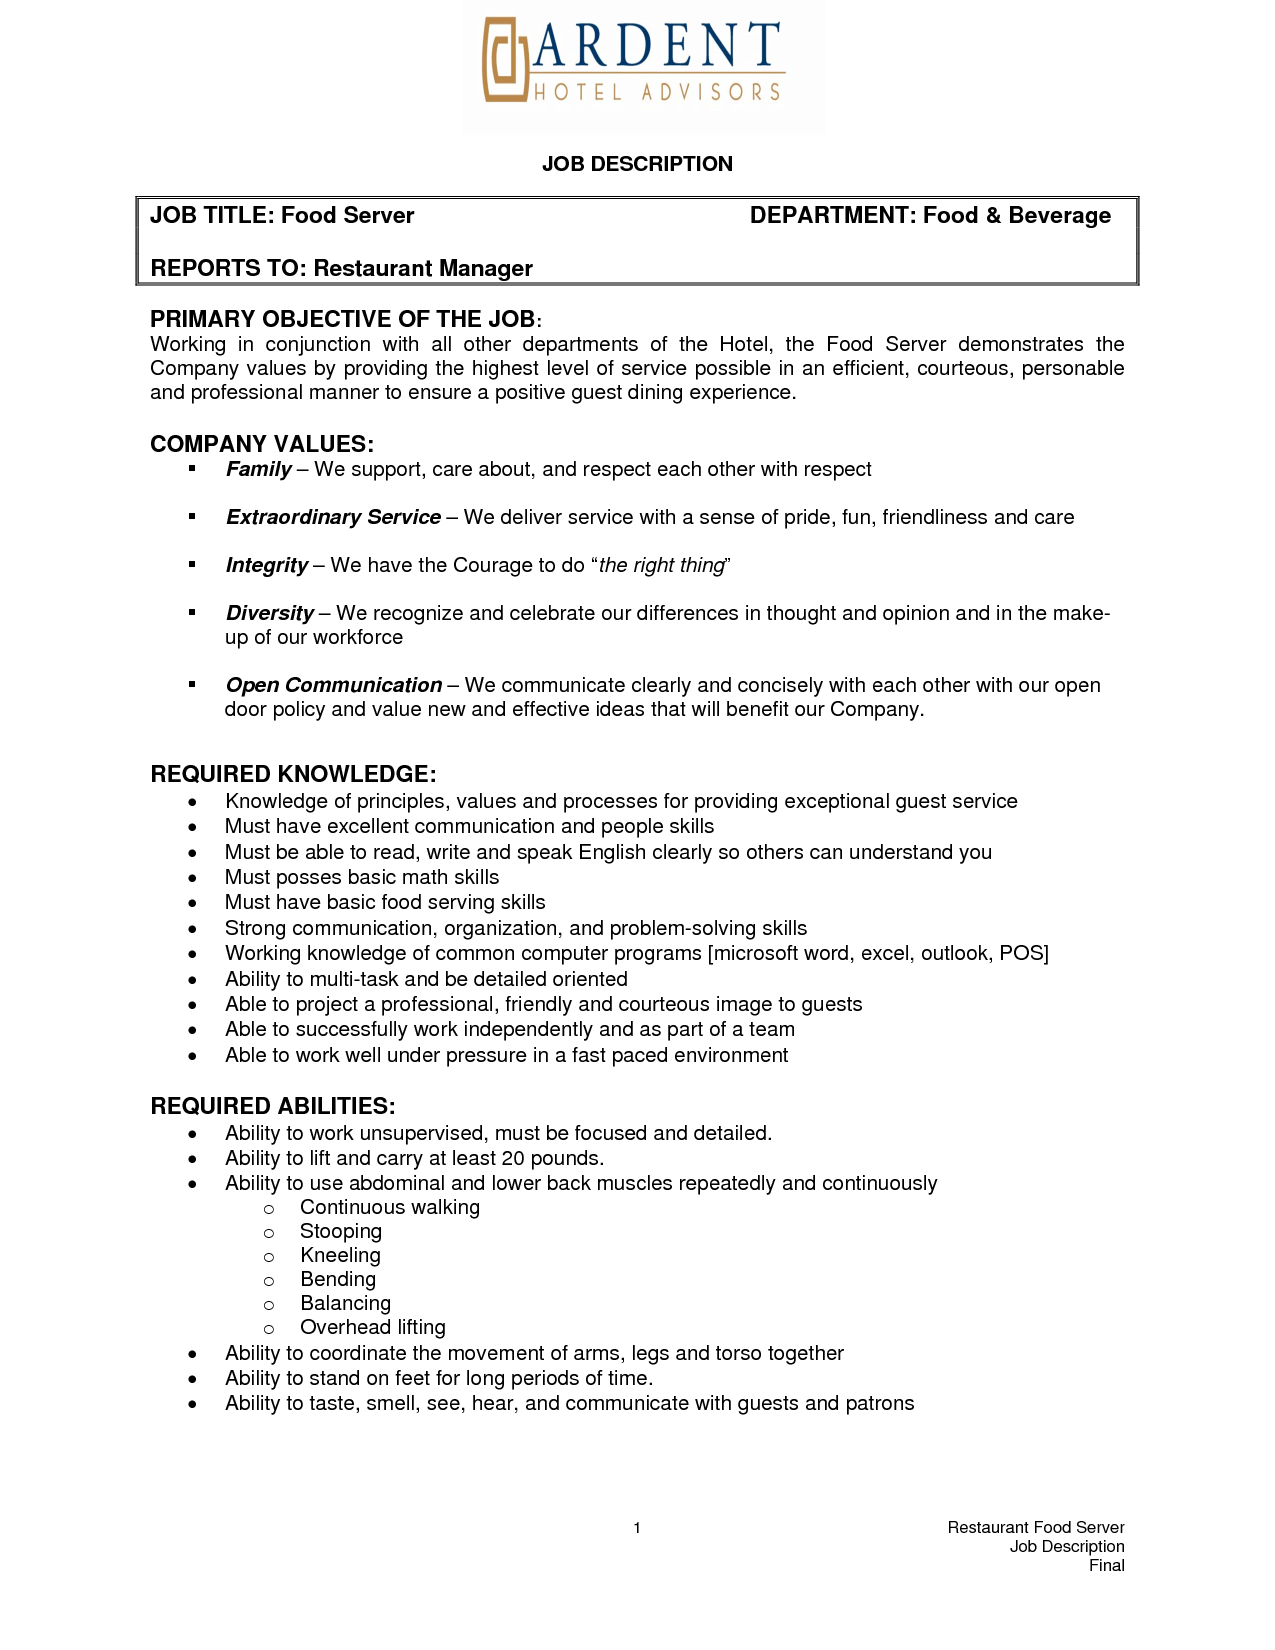 free resume job descriptions